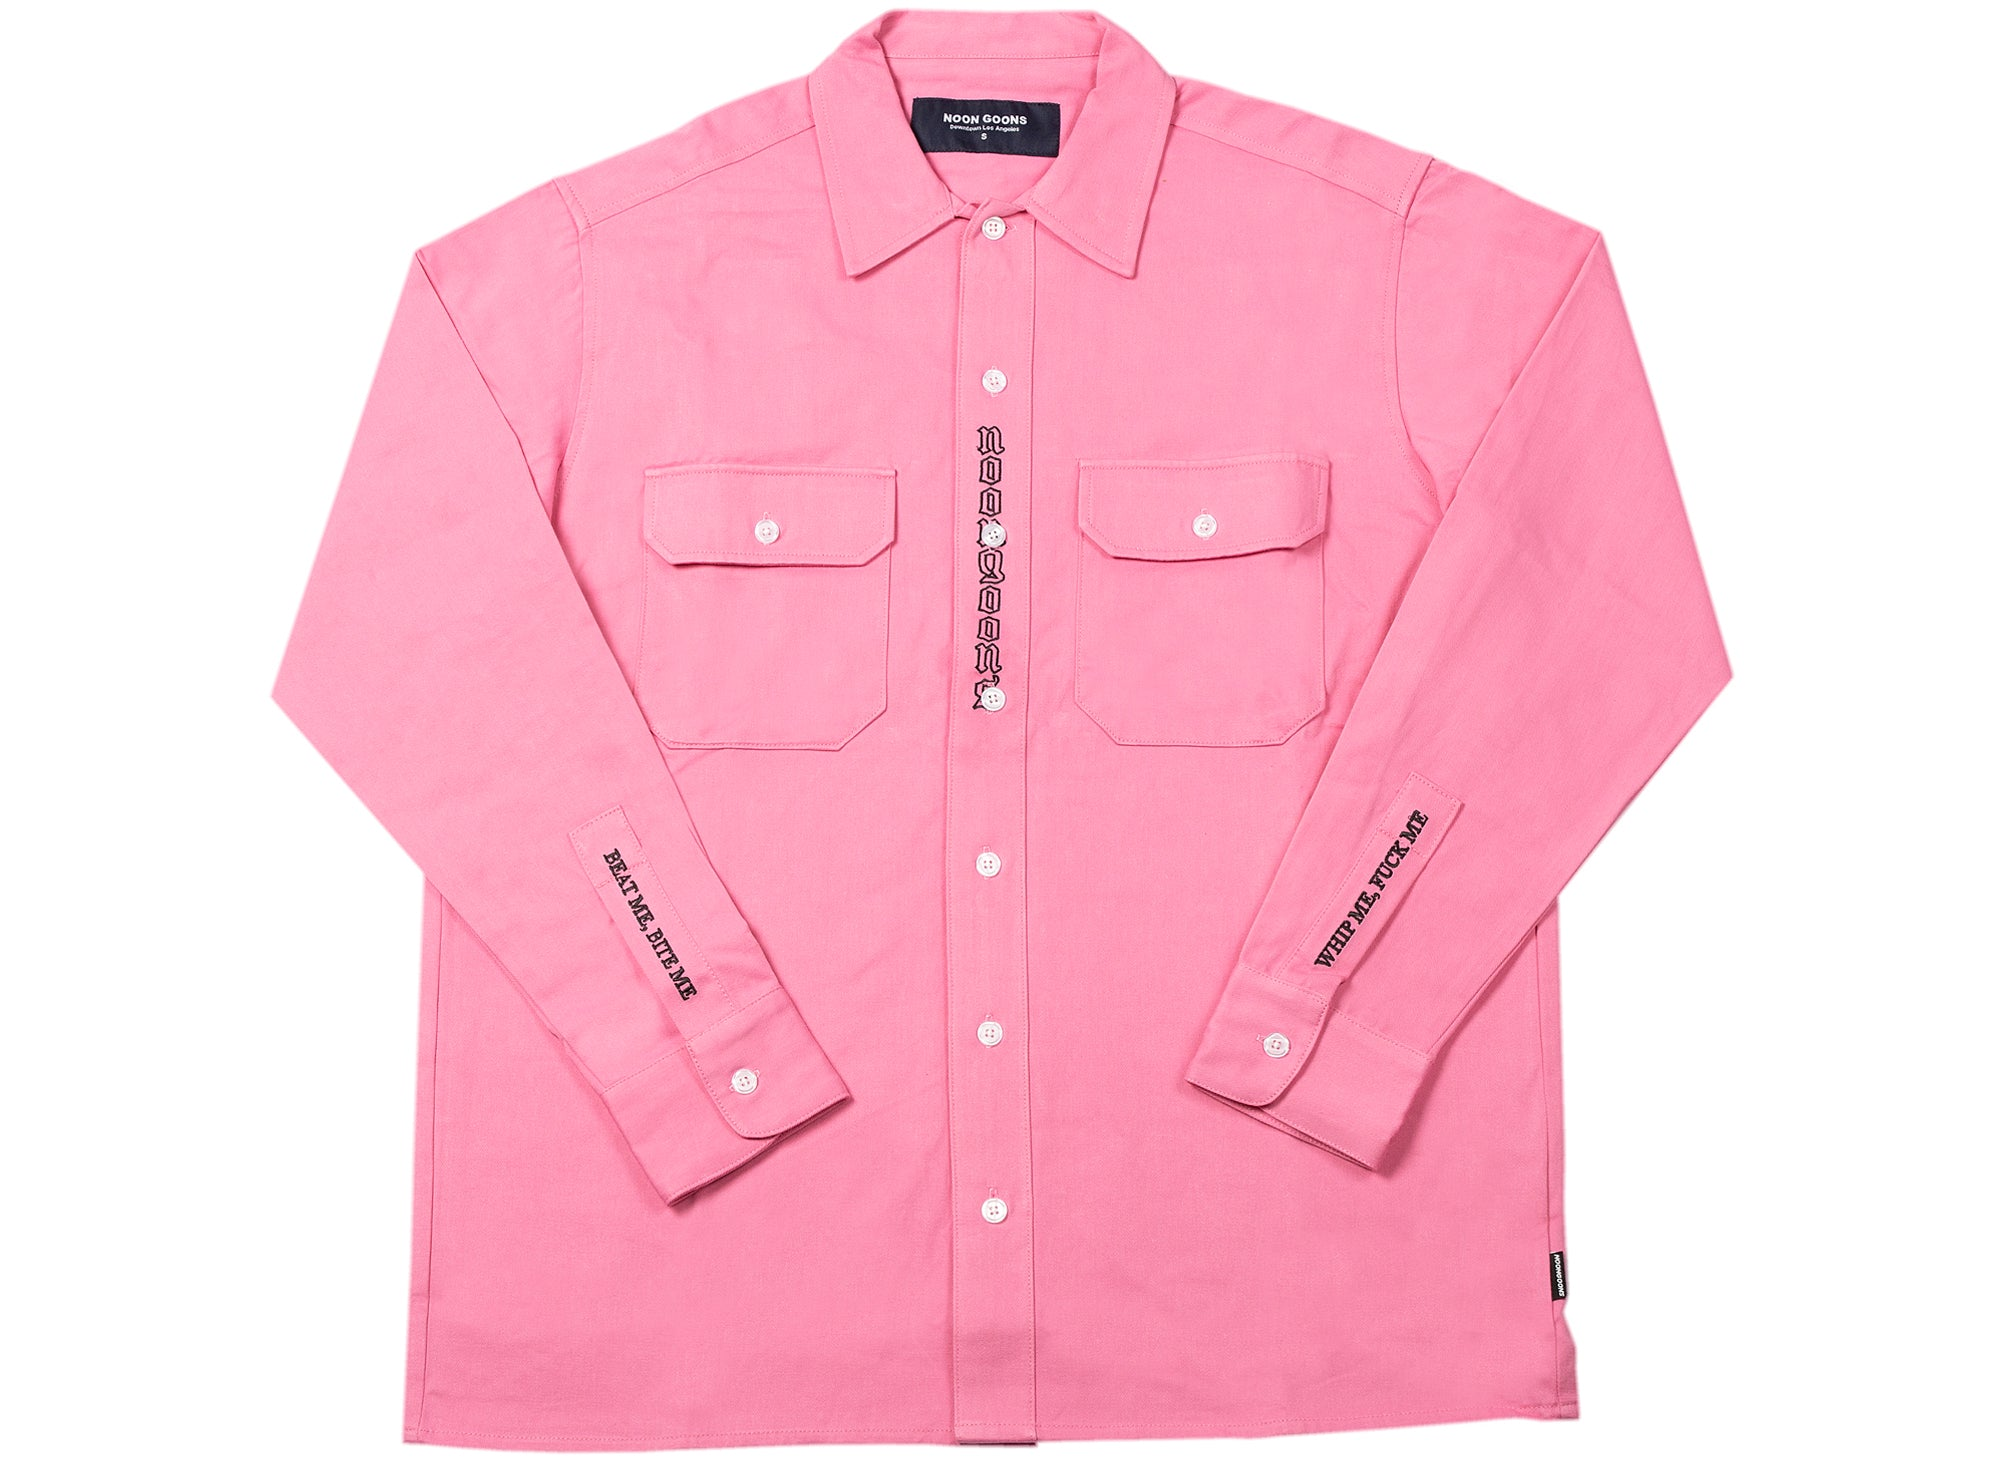 Noon Goons Johnny's Workwear Shirt